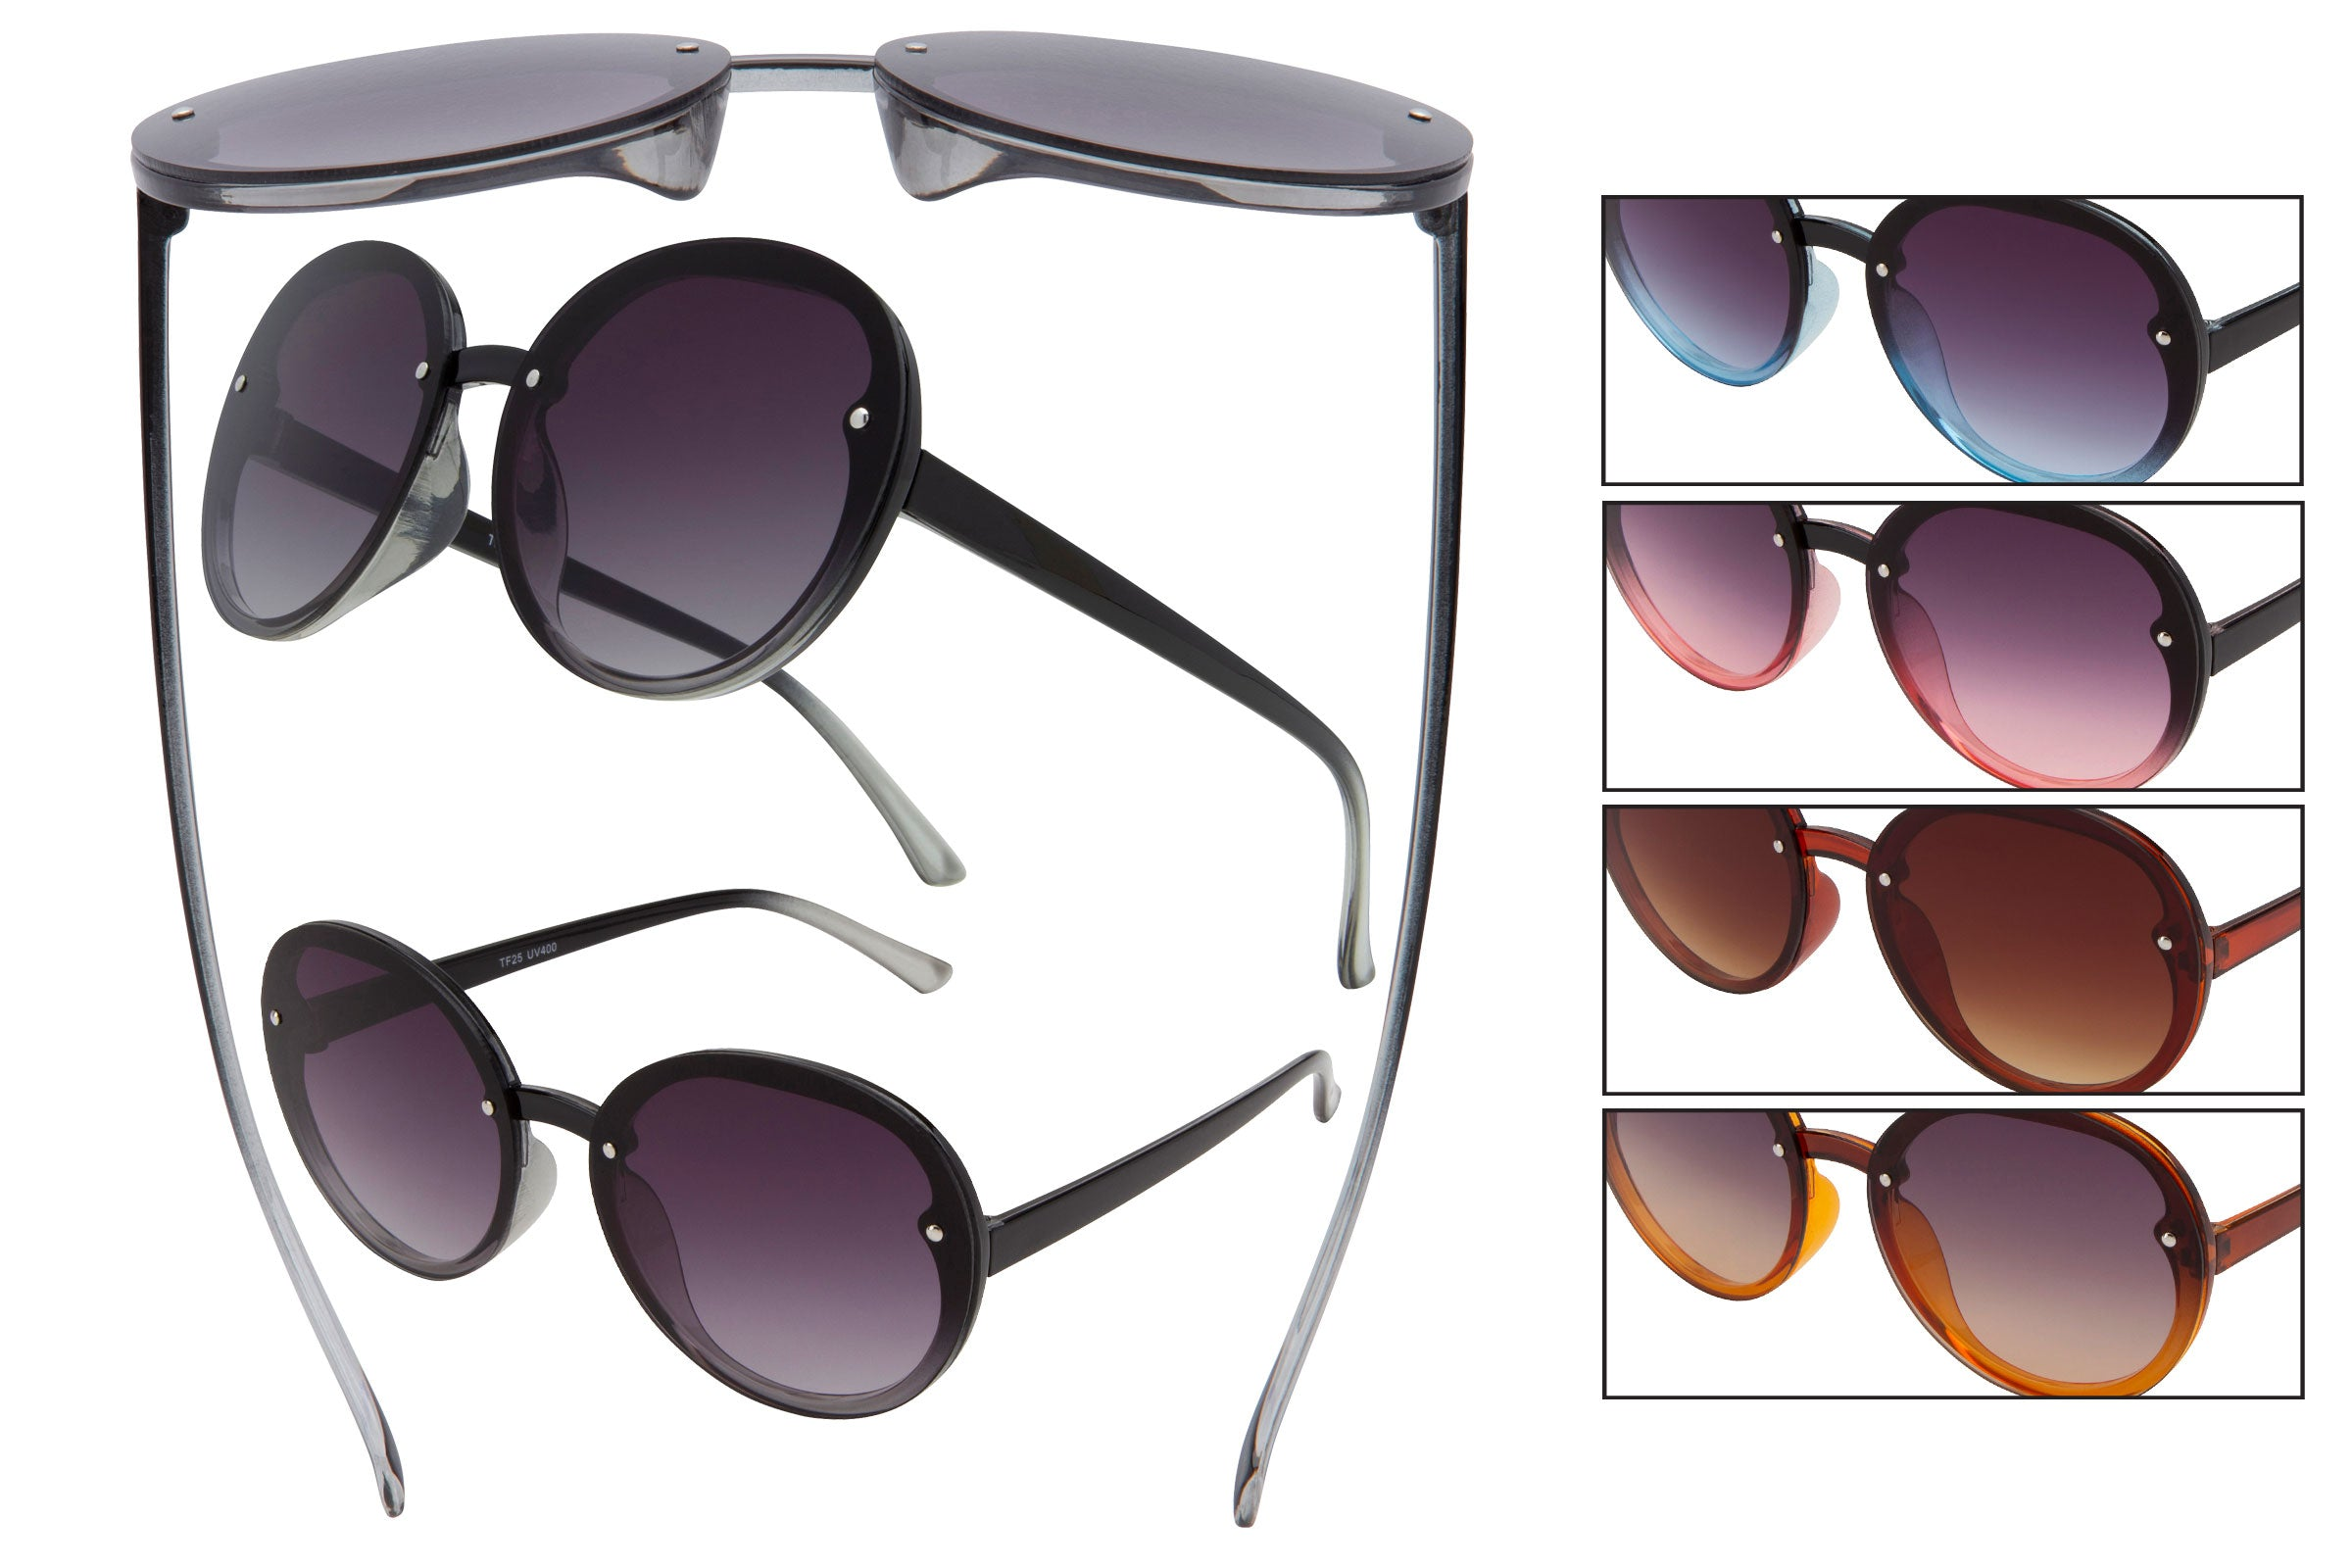 TF25 - Women's Fashion Sunglasses